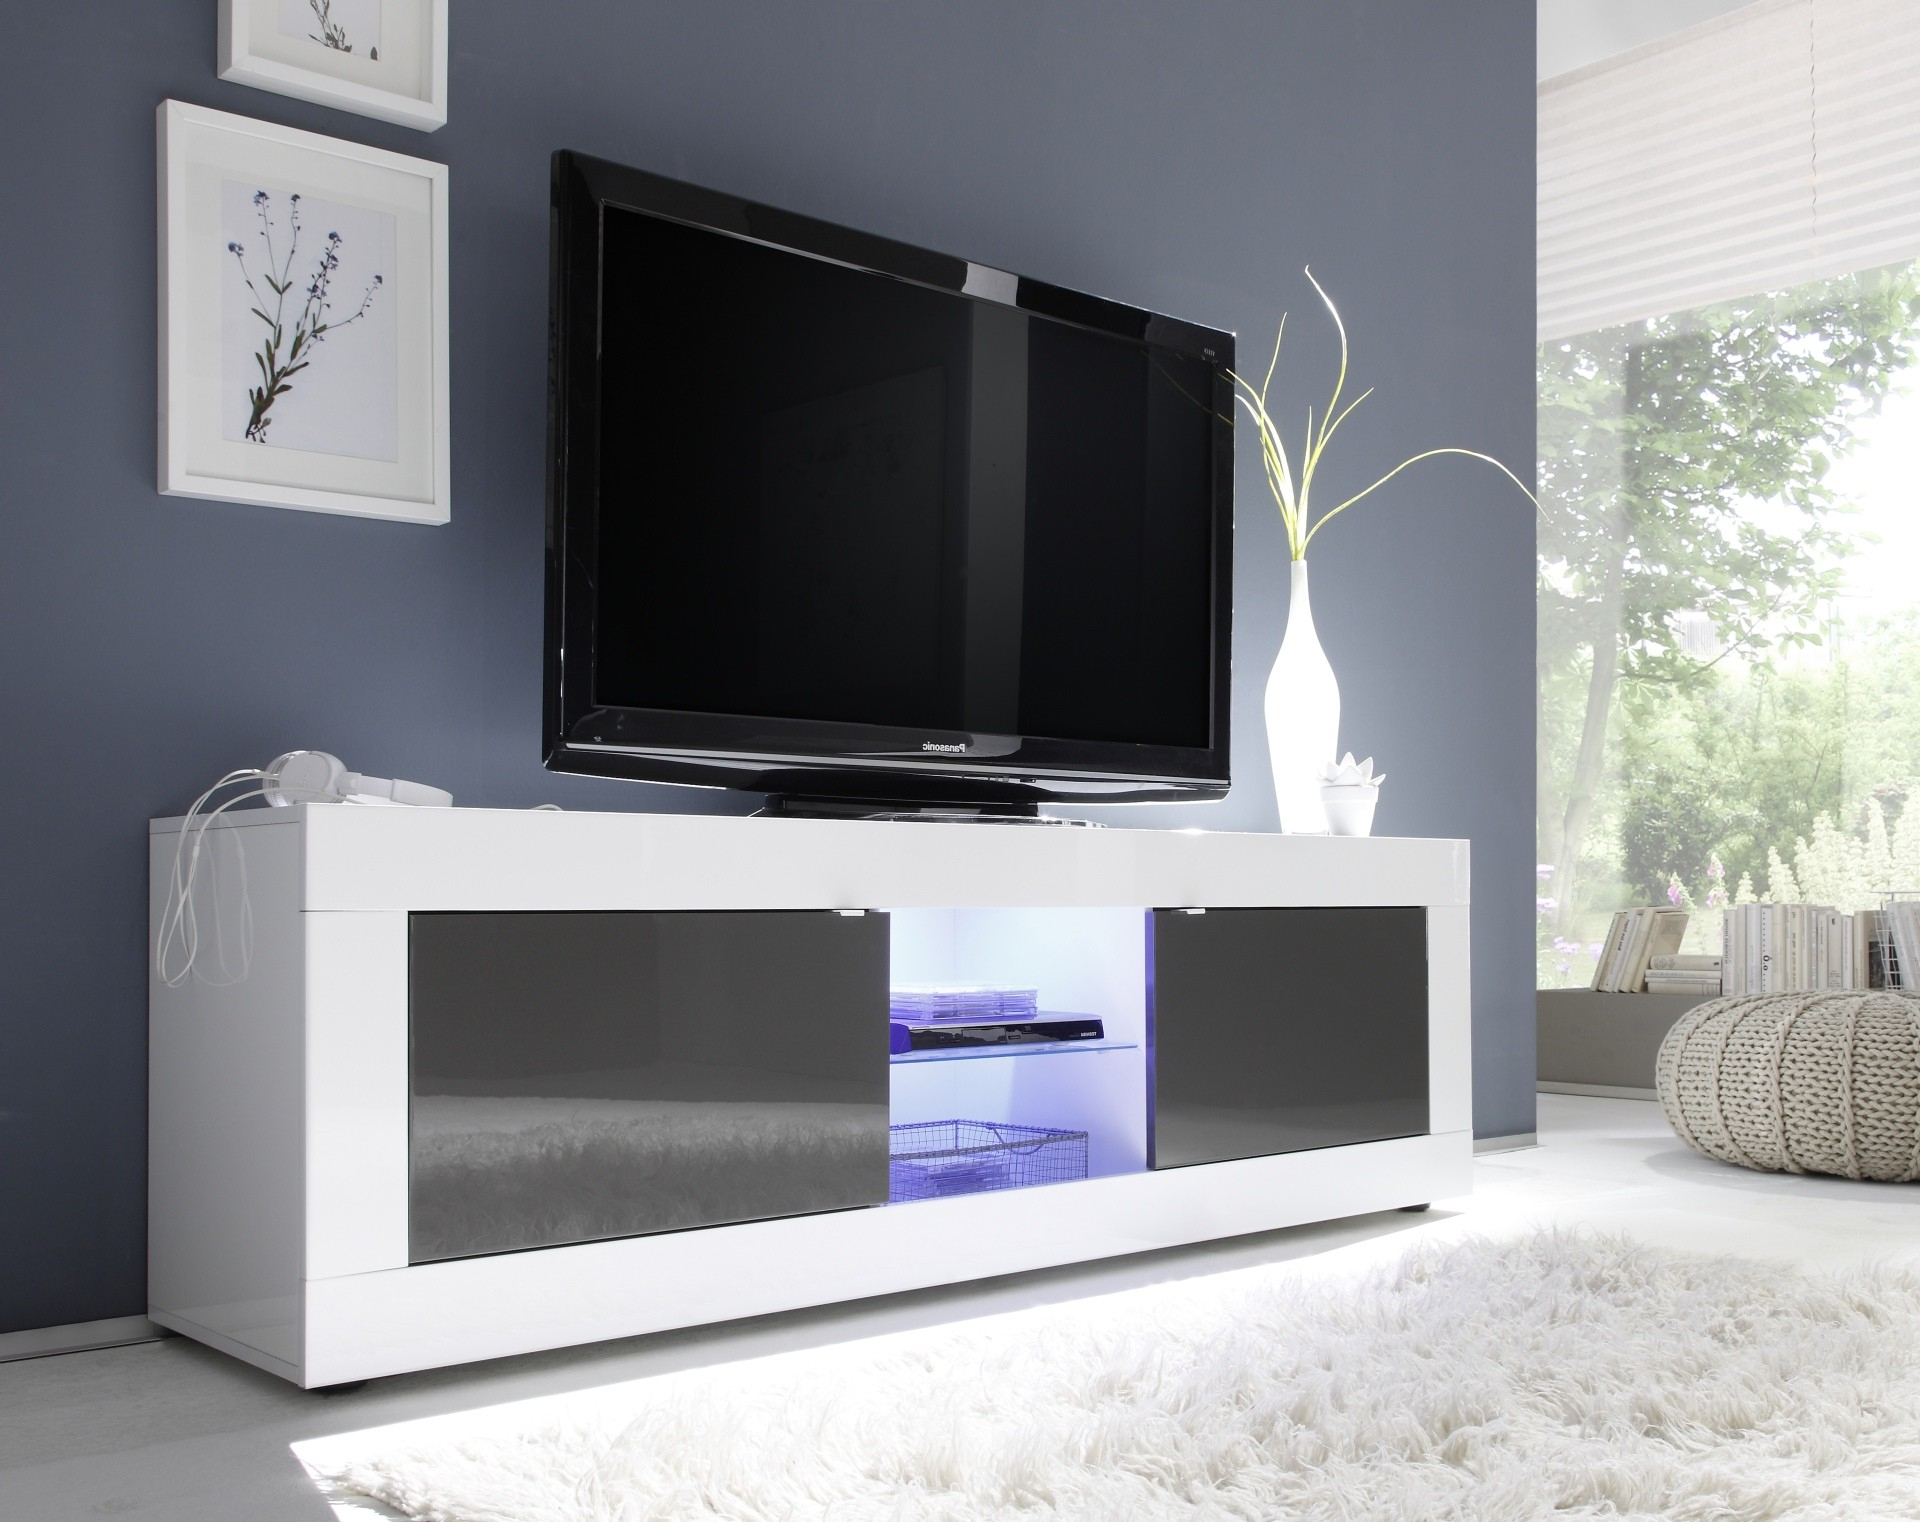 Shiny Tv Stands With Current White Gloss Tv Units (166) – Sena Home Furniture (View 2 of 20)